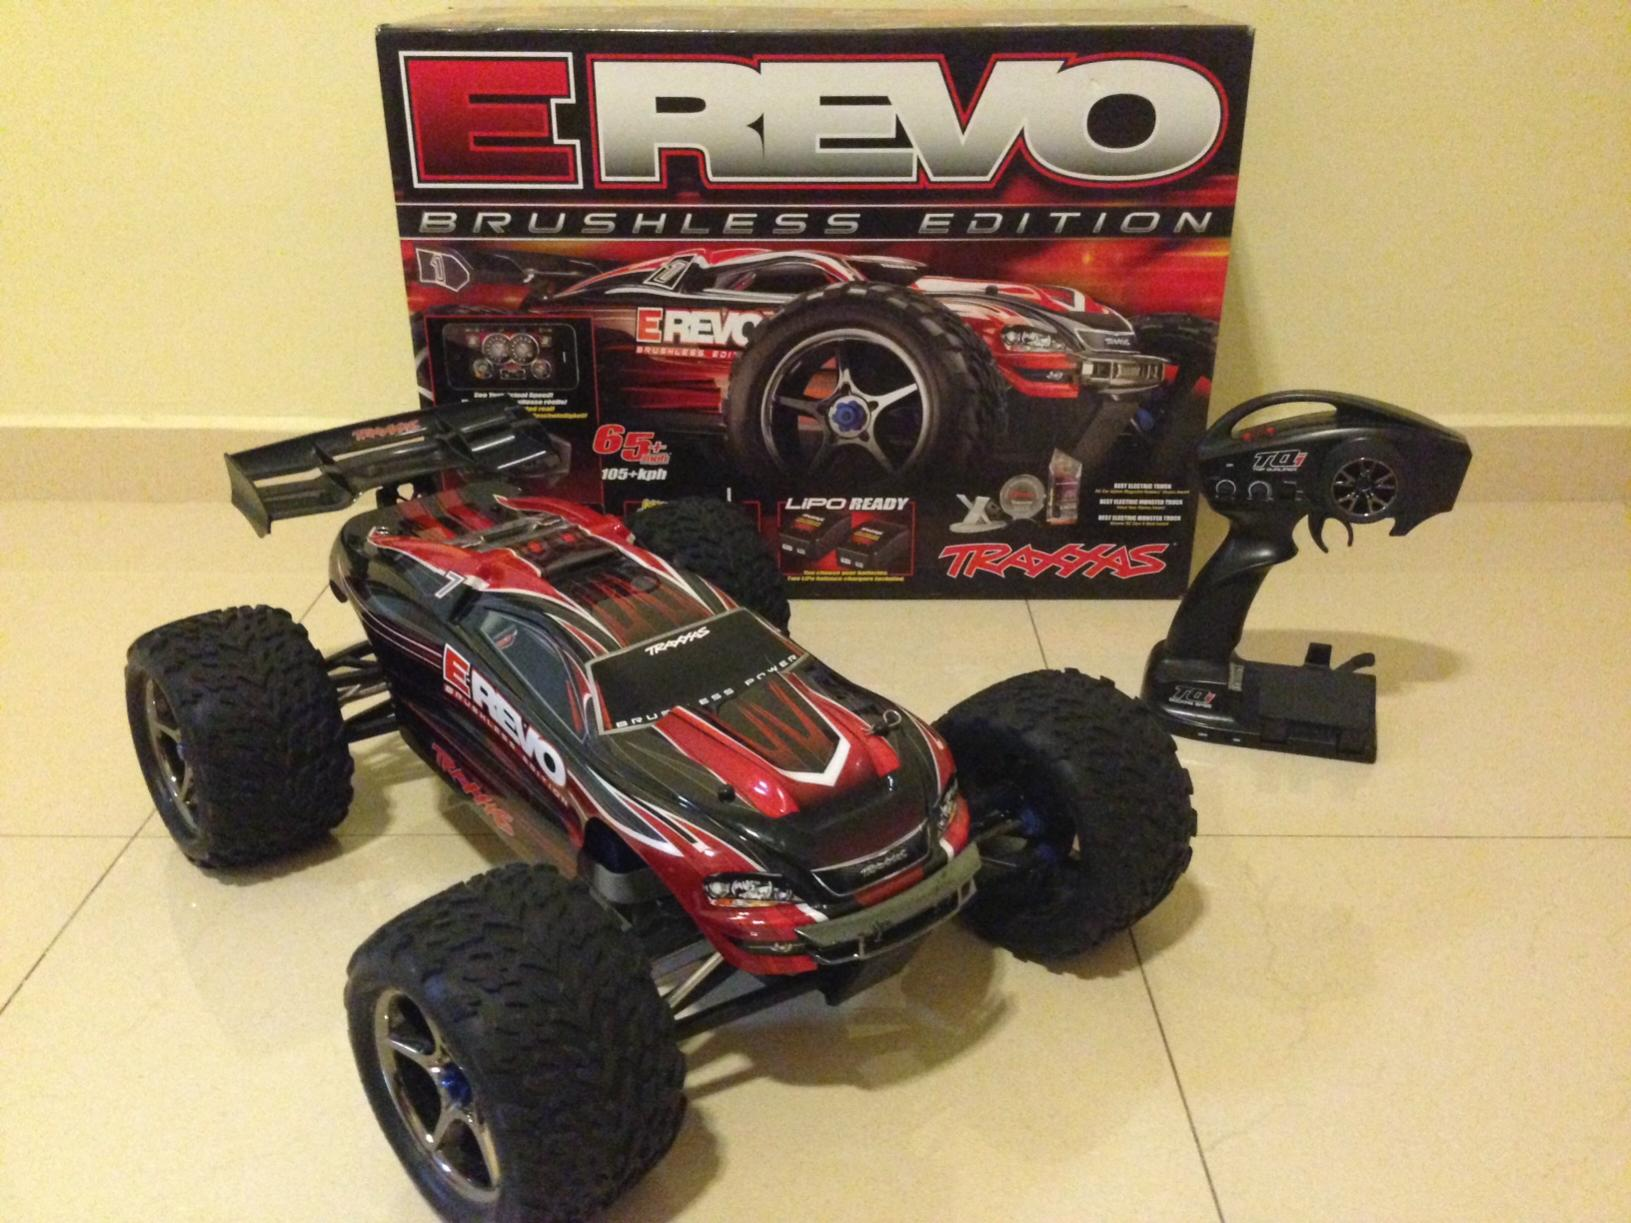 Traxxas E Revo 1 10 Scale Brushless with Upgrades photo 4